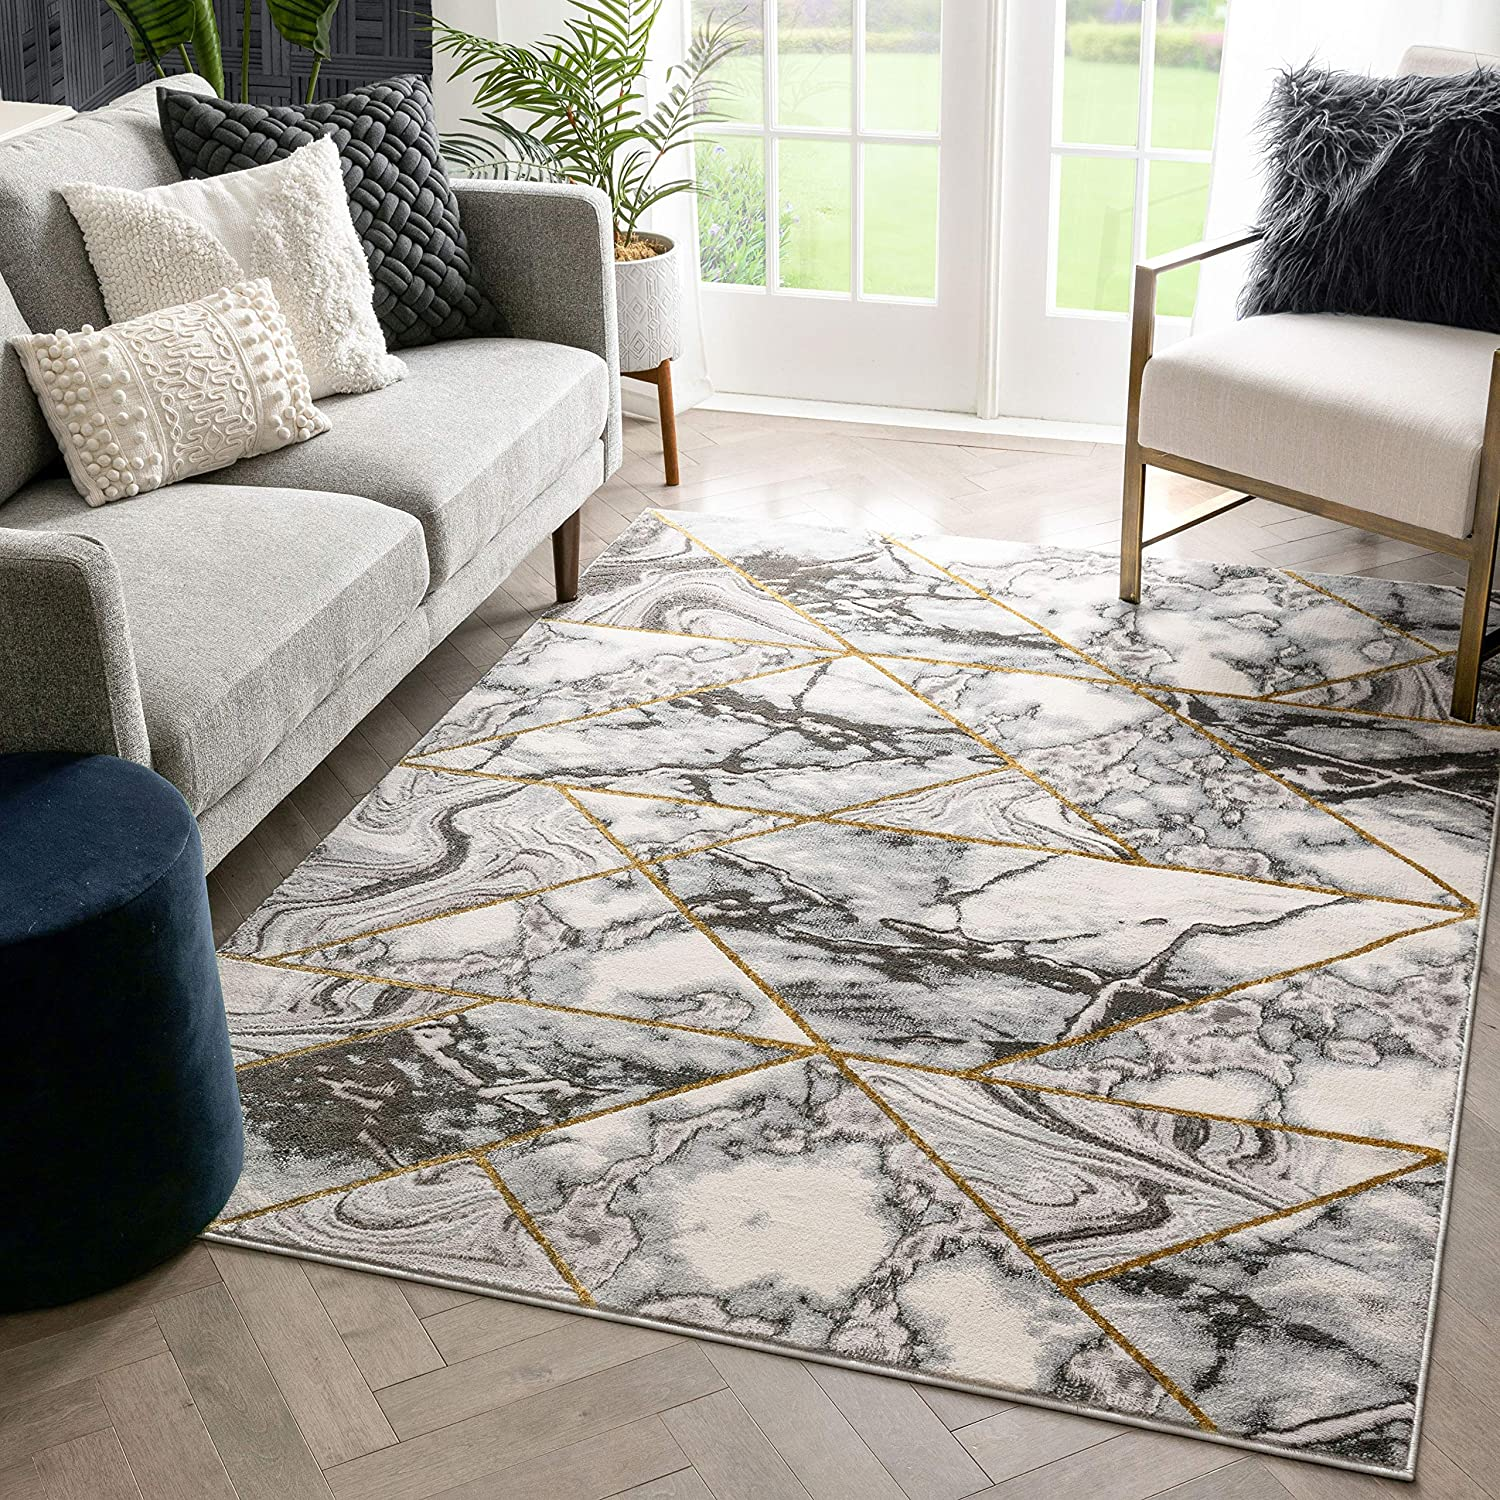 Well Woven Corbin quality assurance Popular shop is the lowest price challenge Grey Gold Retro Pattern Area R Border Marble